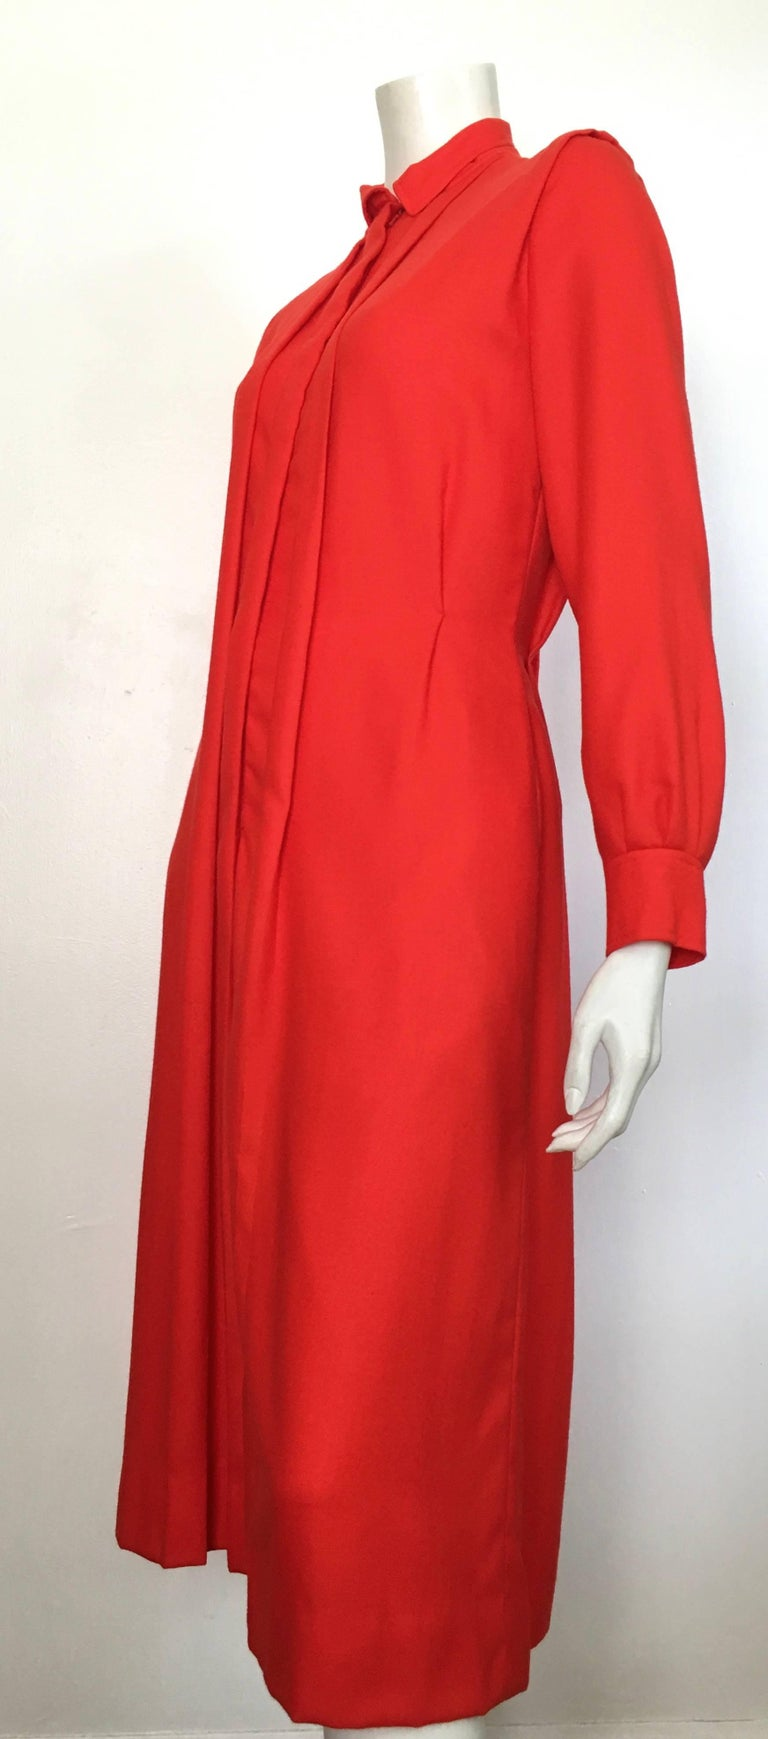 Courreges Red Wool Long Sleeve Dress with Pockets, 1980s  For Sale 11